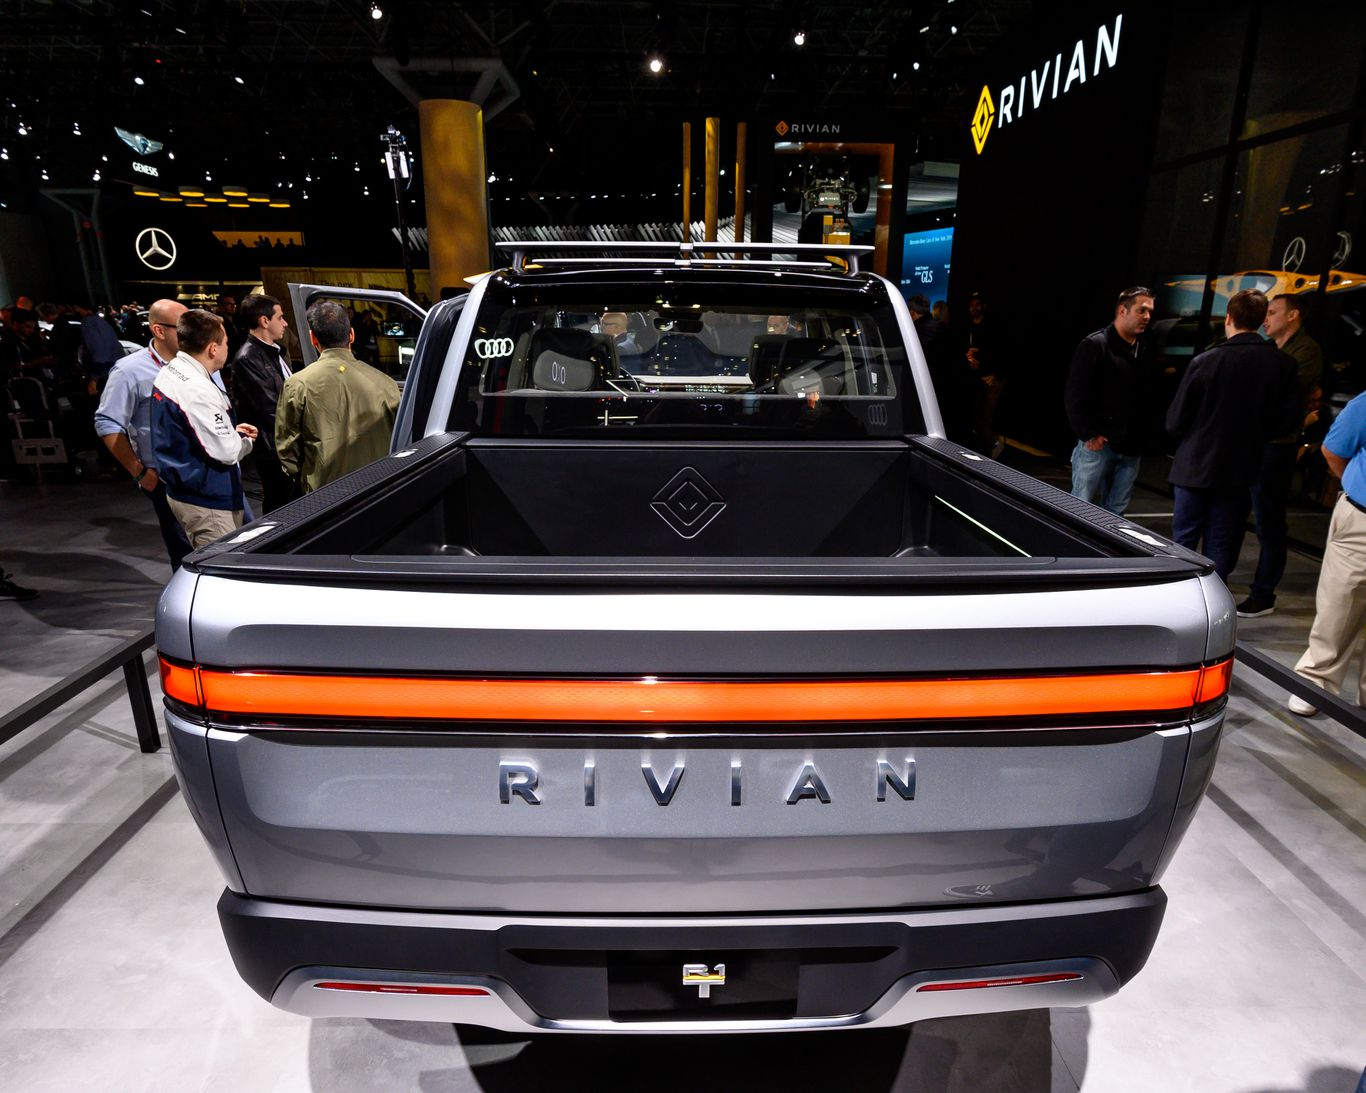 Electric vehicle startup Rivian lands $2.5 billion in new funding